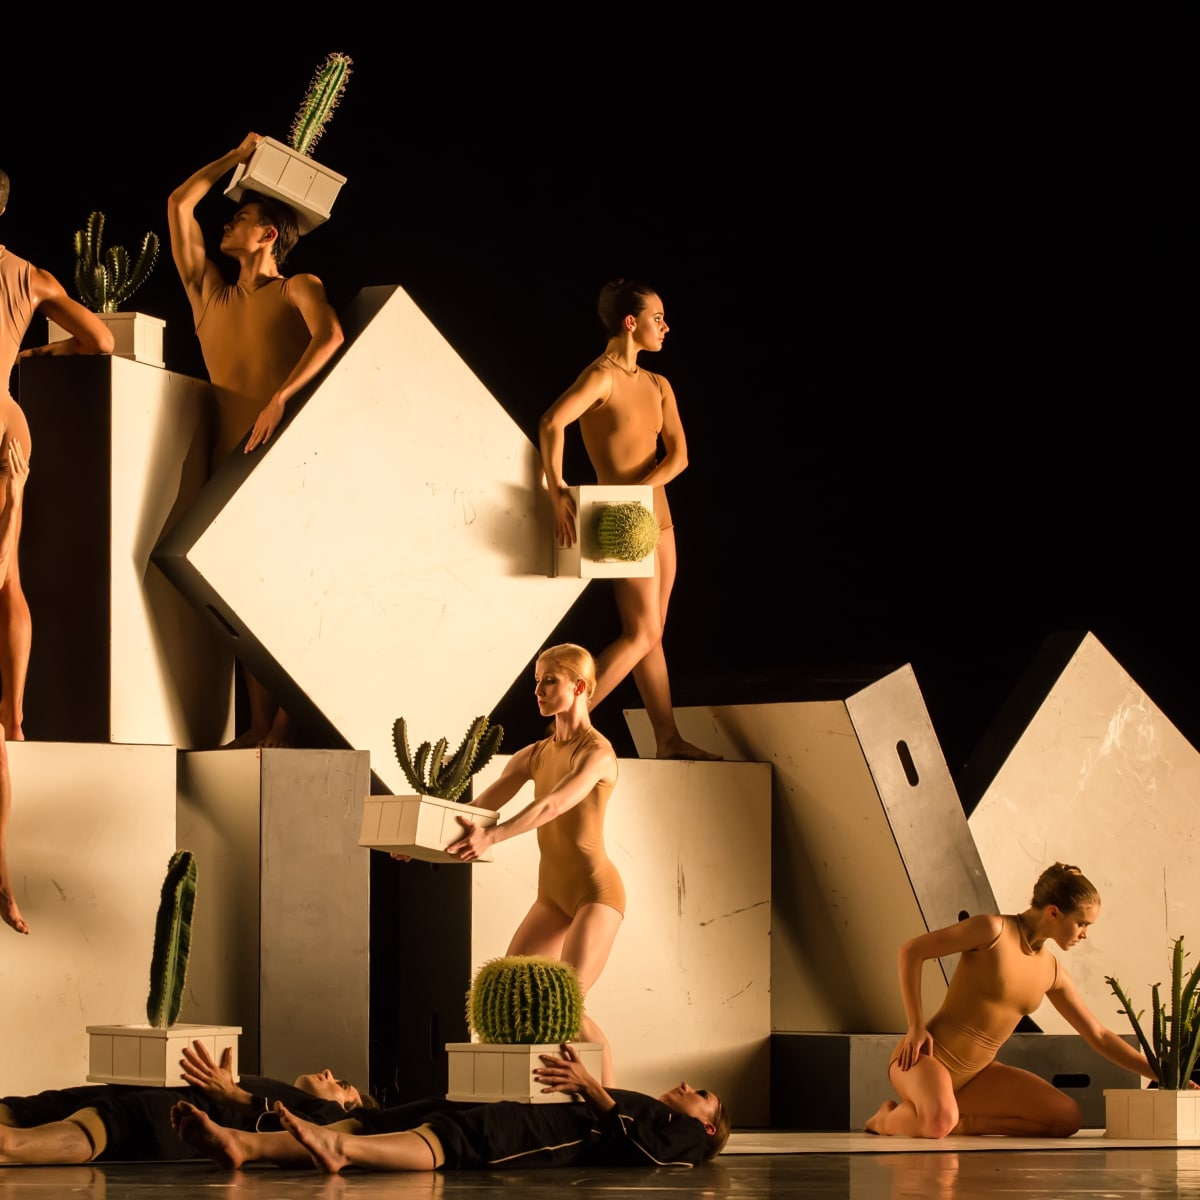 artists of Houston Ballet in Cacti